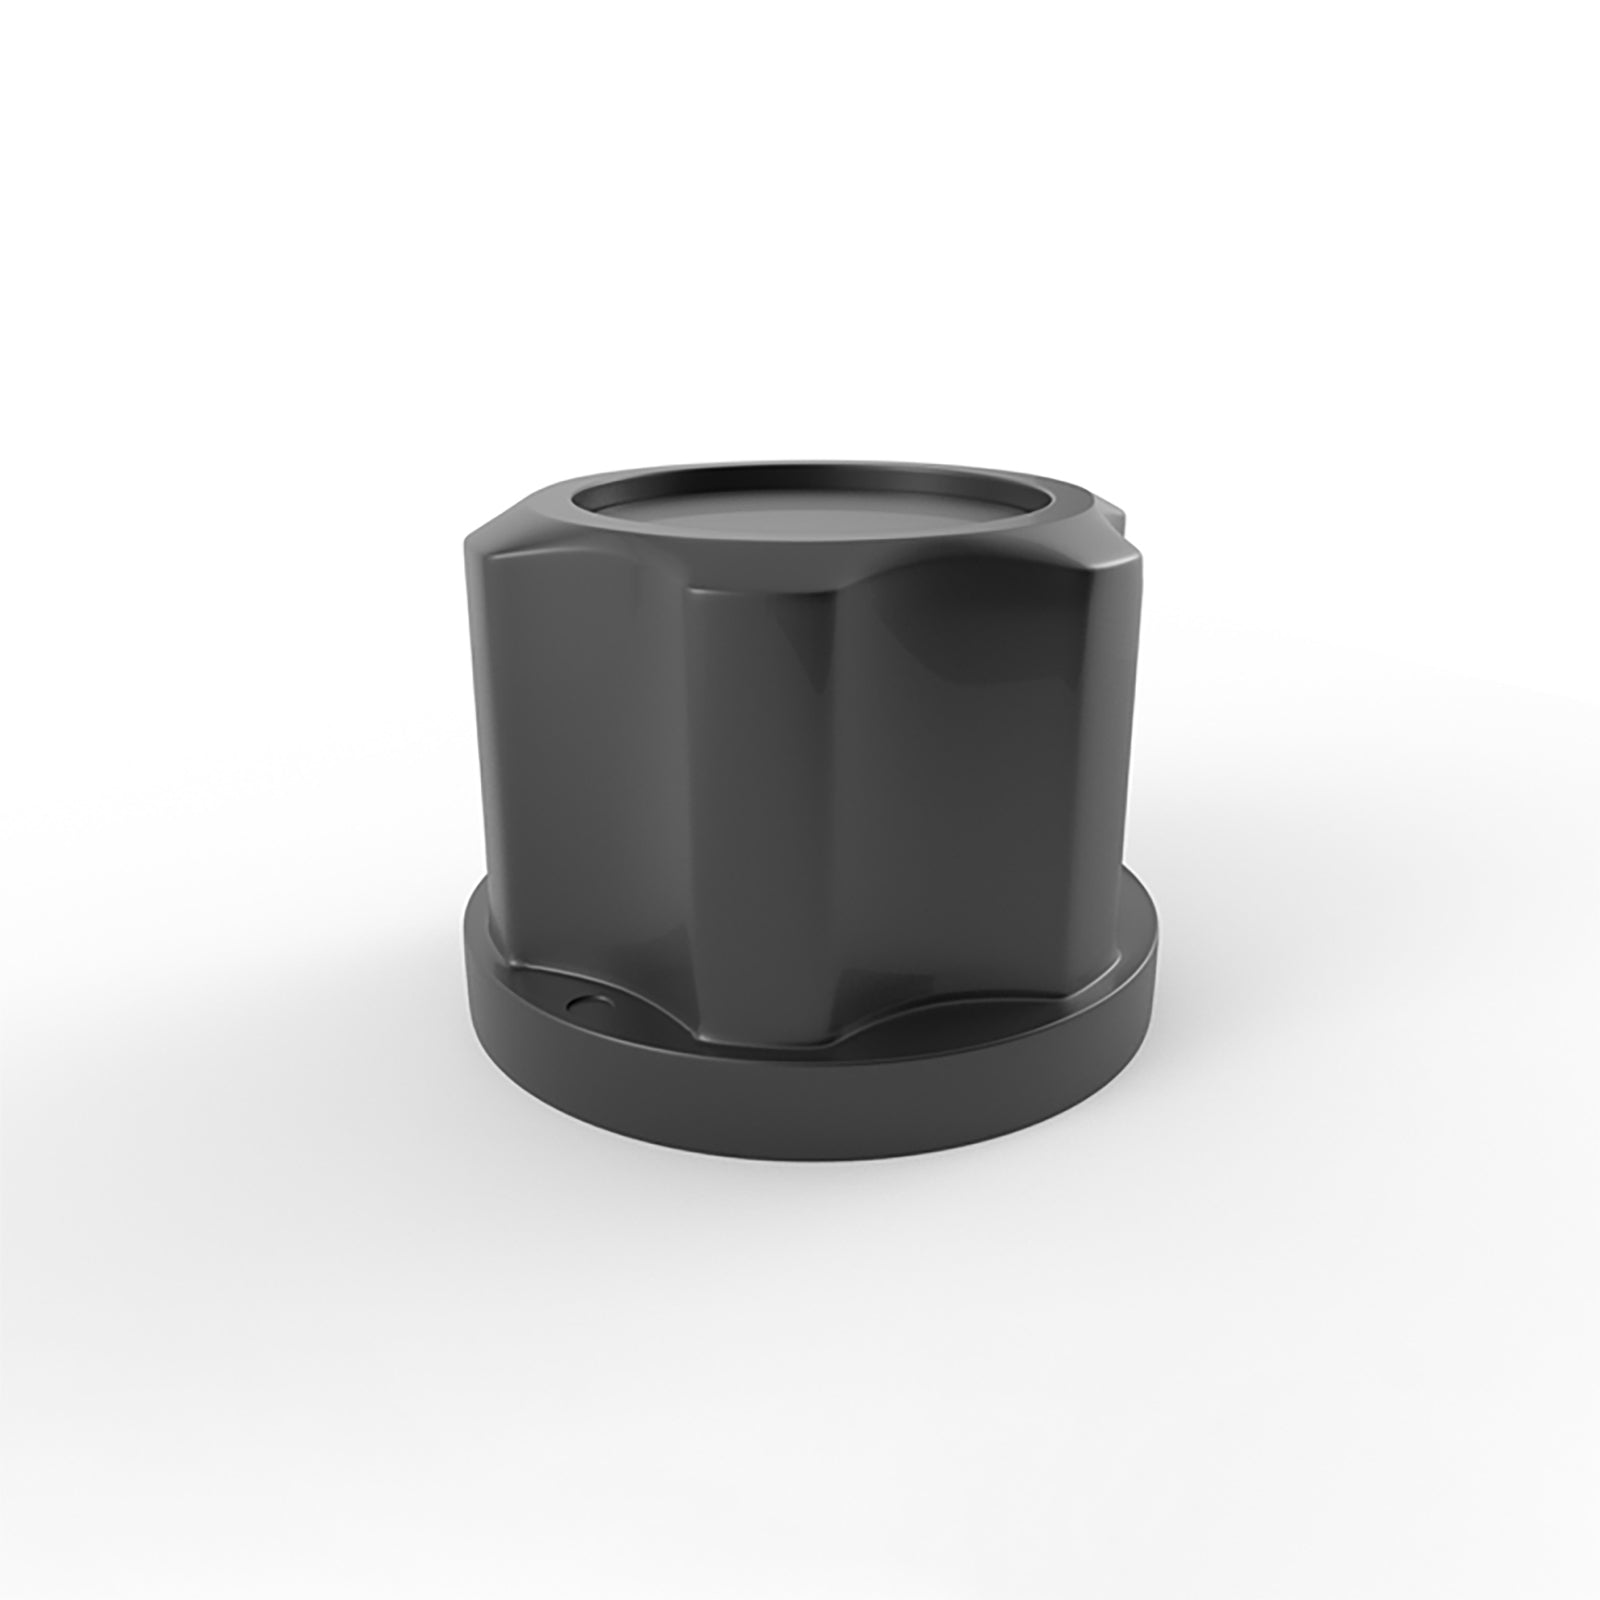 Ribbed audio knob 3D model